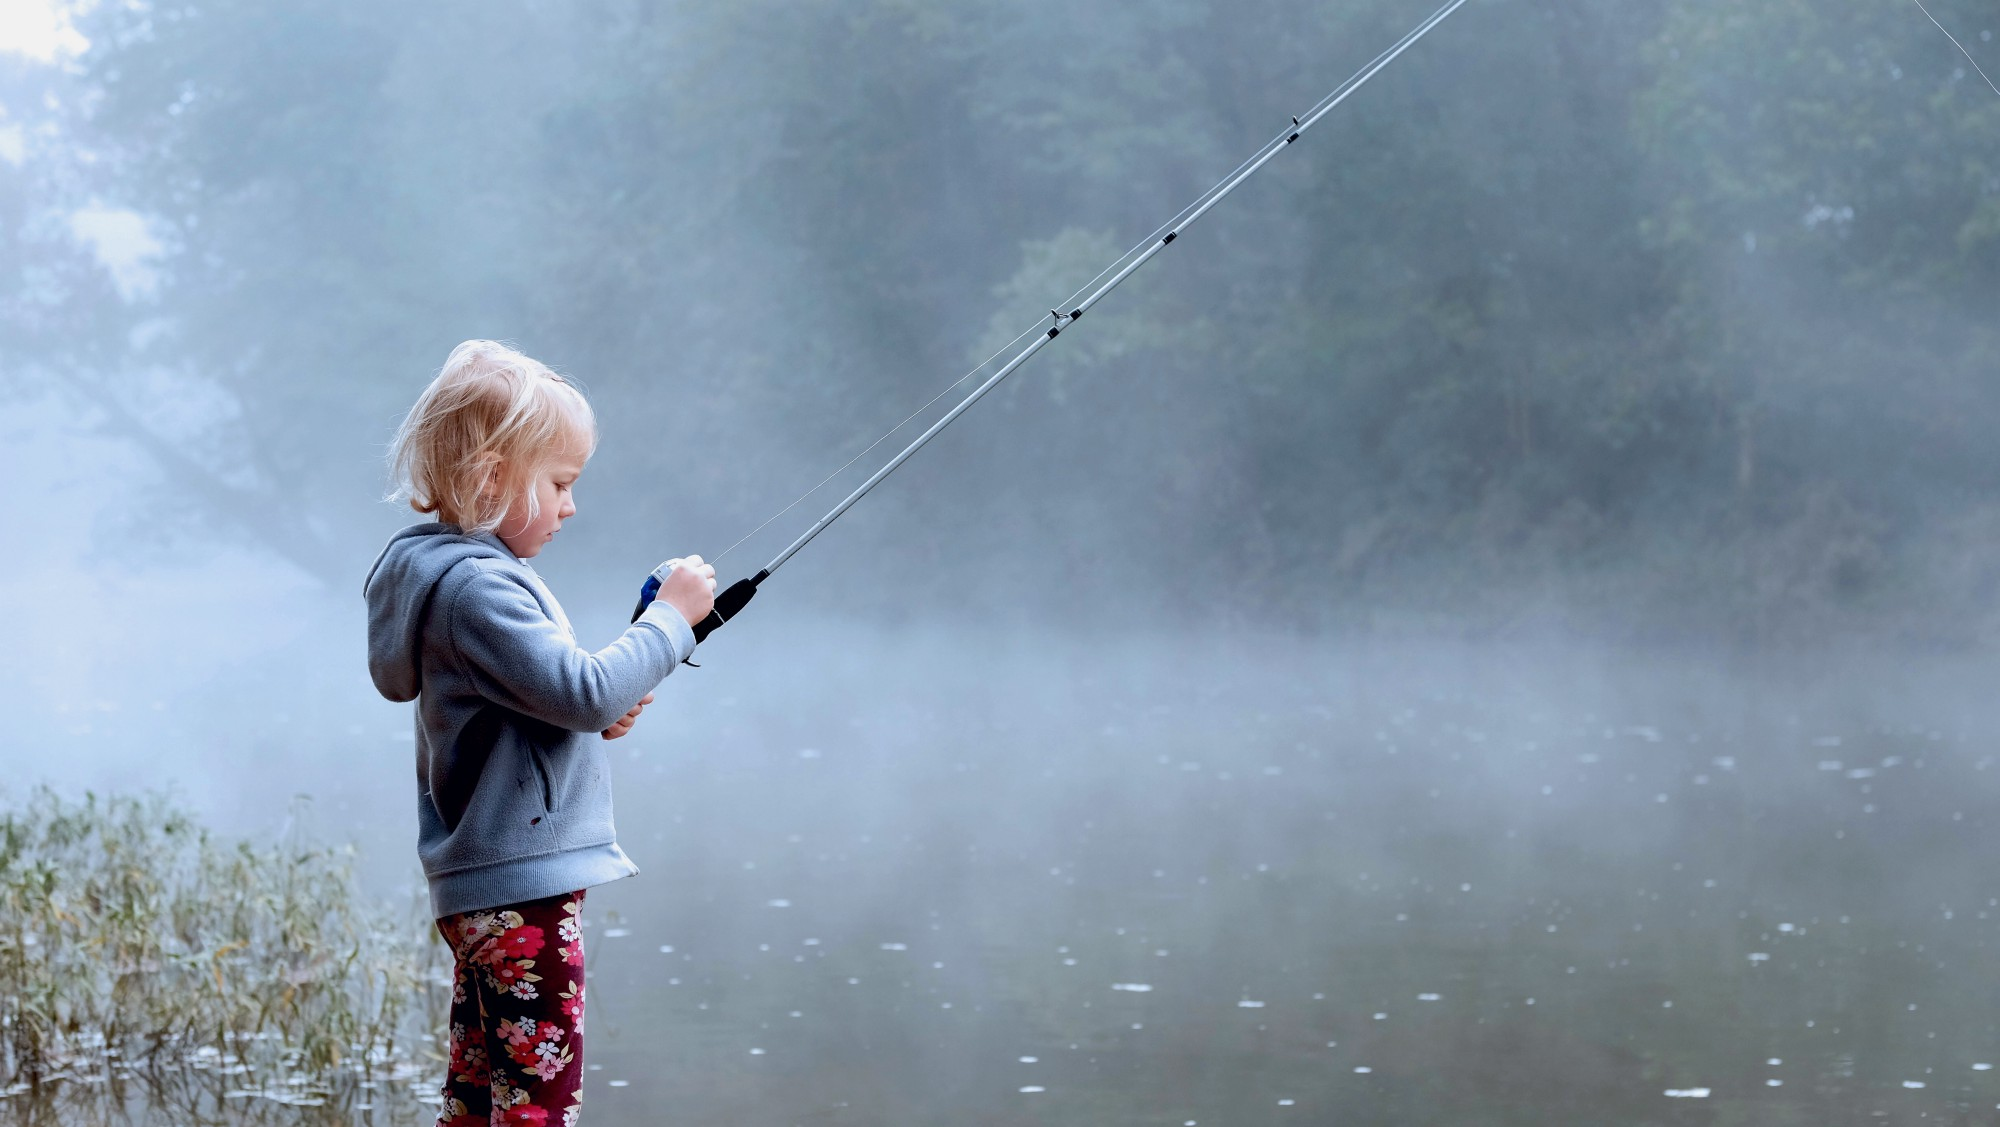 A young child fishing